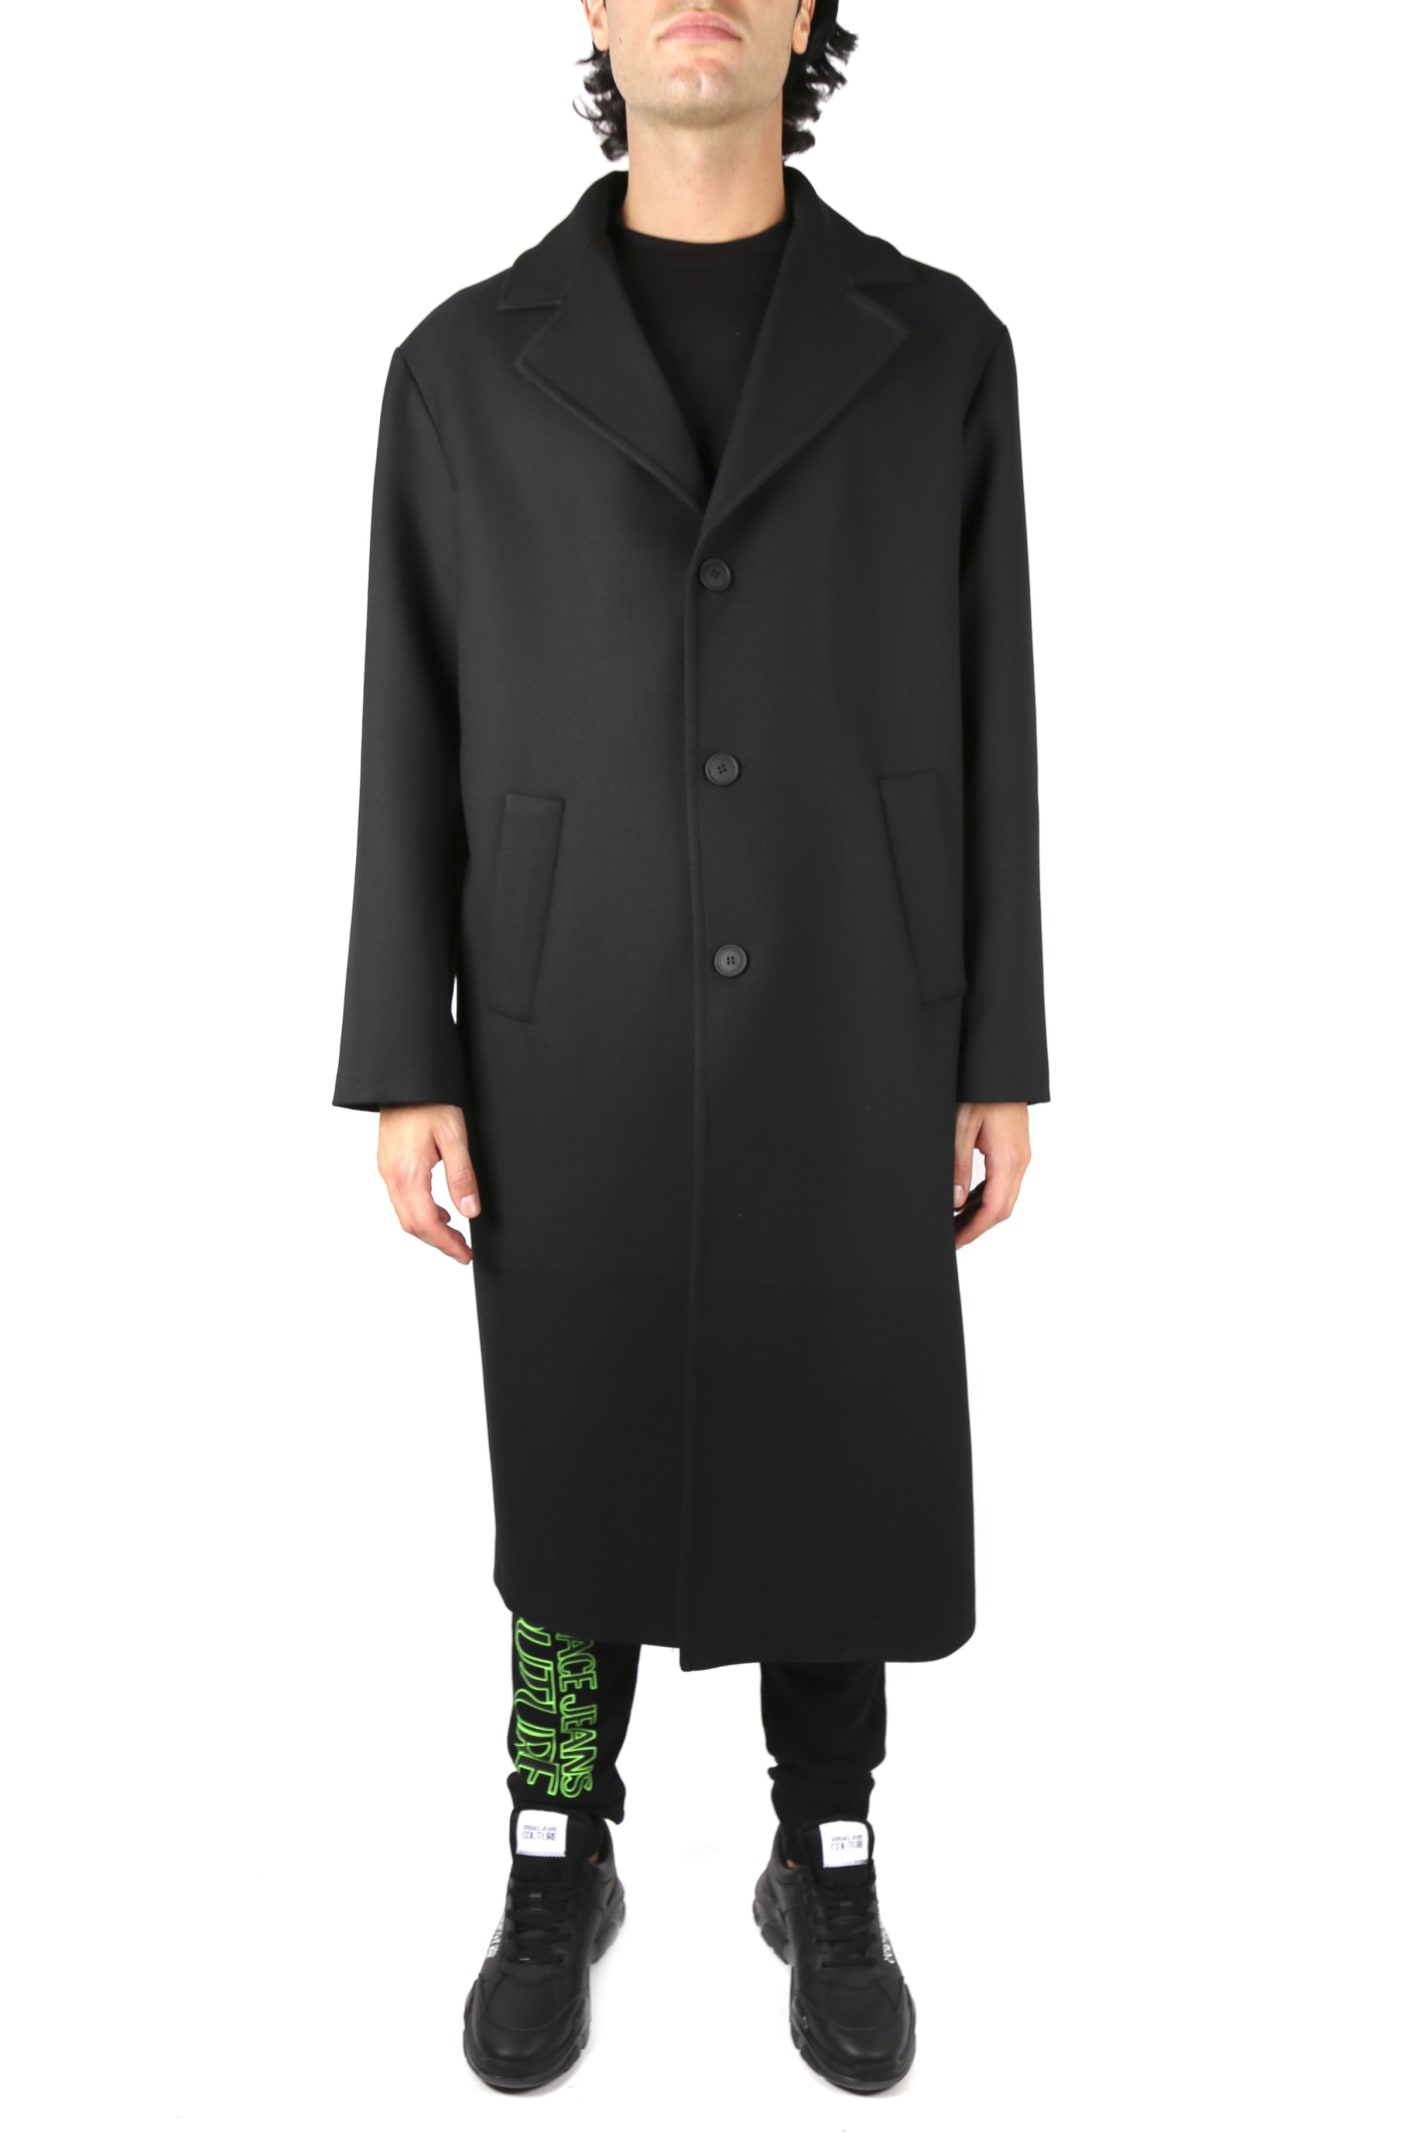 Versace Jeans Couture Oversized Black Tailored Coat